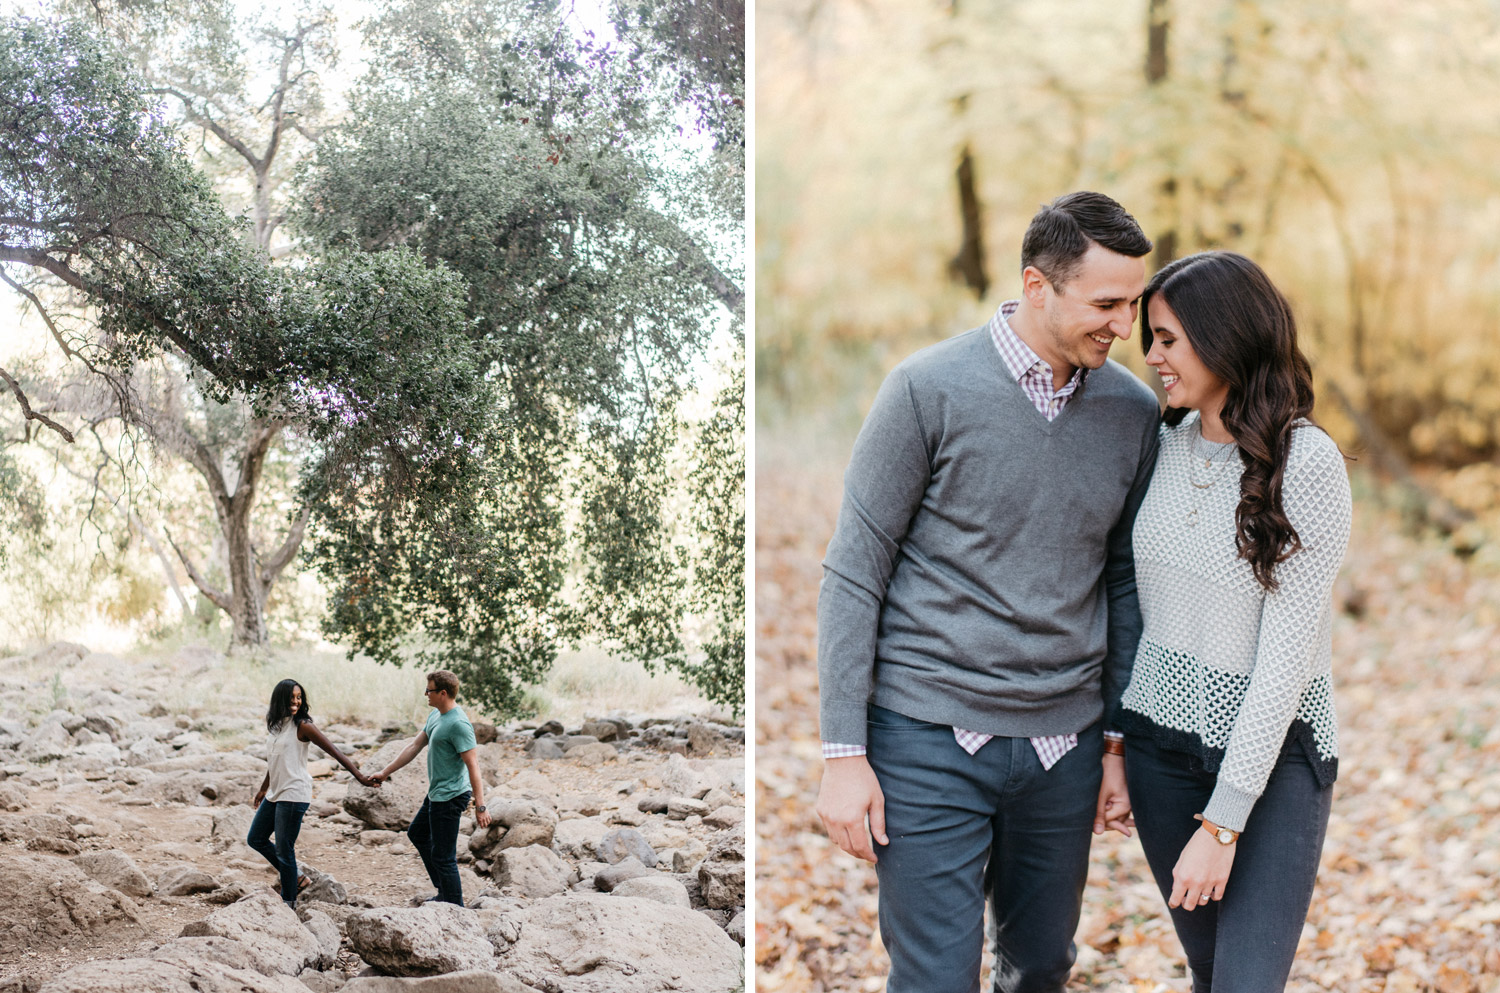 Natural Engagement Photography by geneoh photography